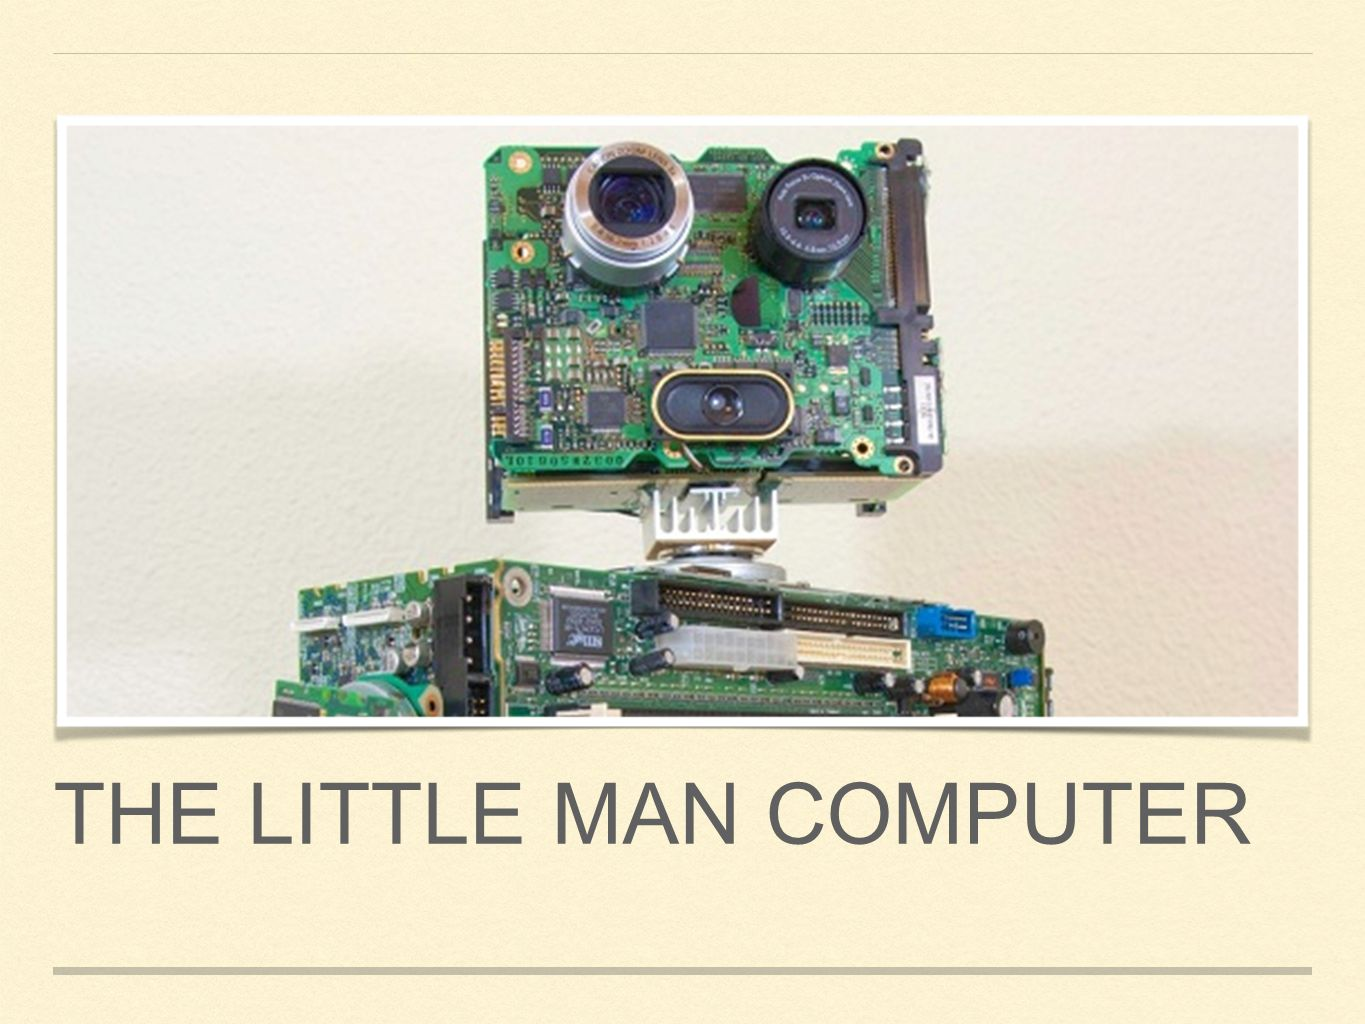 The Little man computer